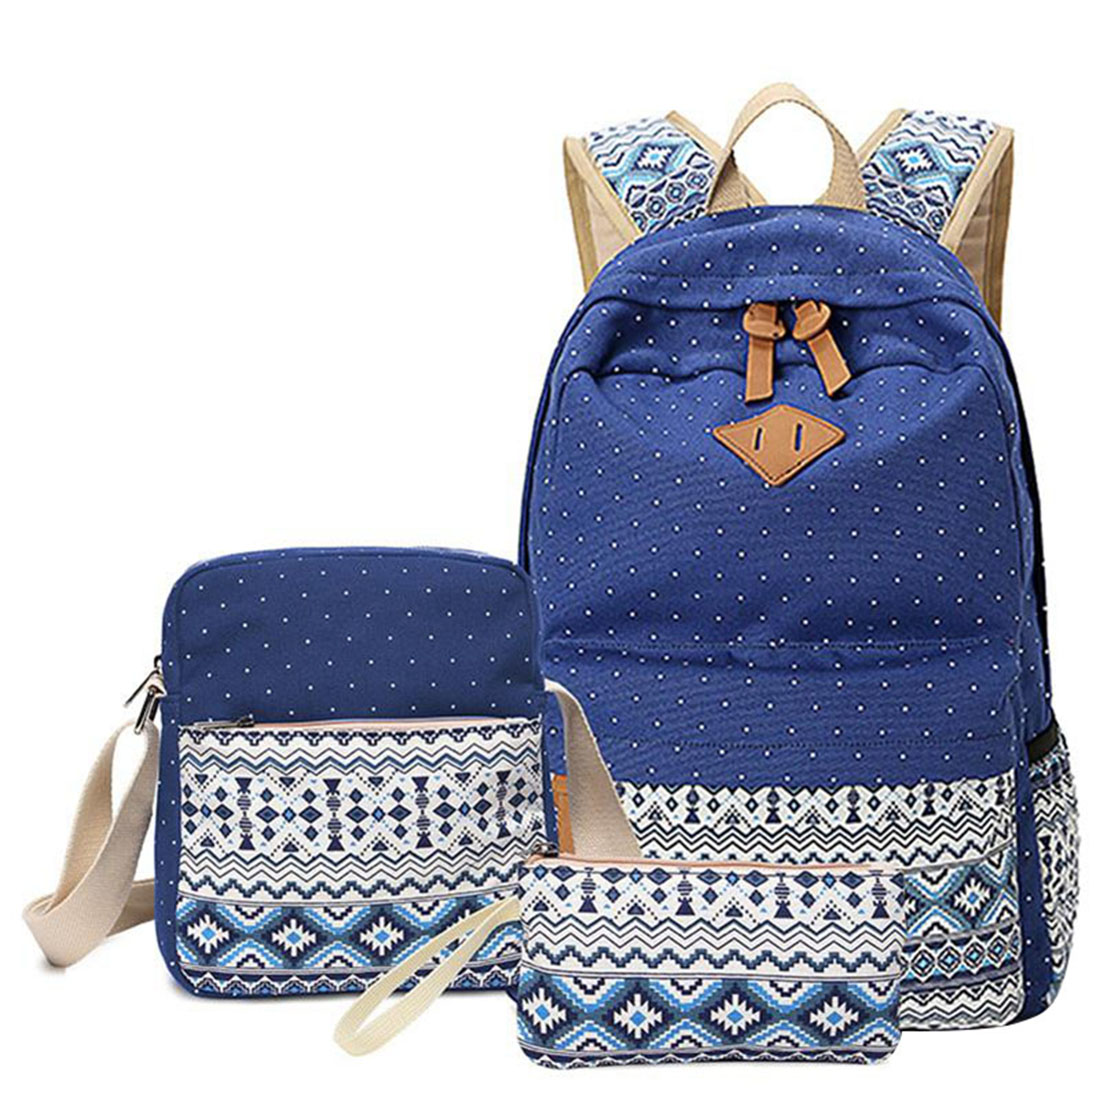 Energetic Dispalang Hottest Computer Backpack For Students Blue Camouflage Pattern On High School Bags Boys Laptop Back Bag For Travelling Commodities Are Available Without Restriction Men's Bags